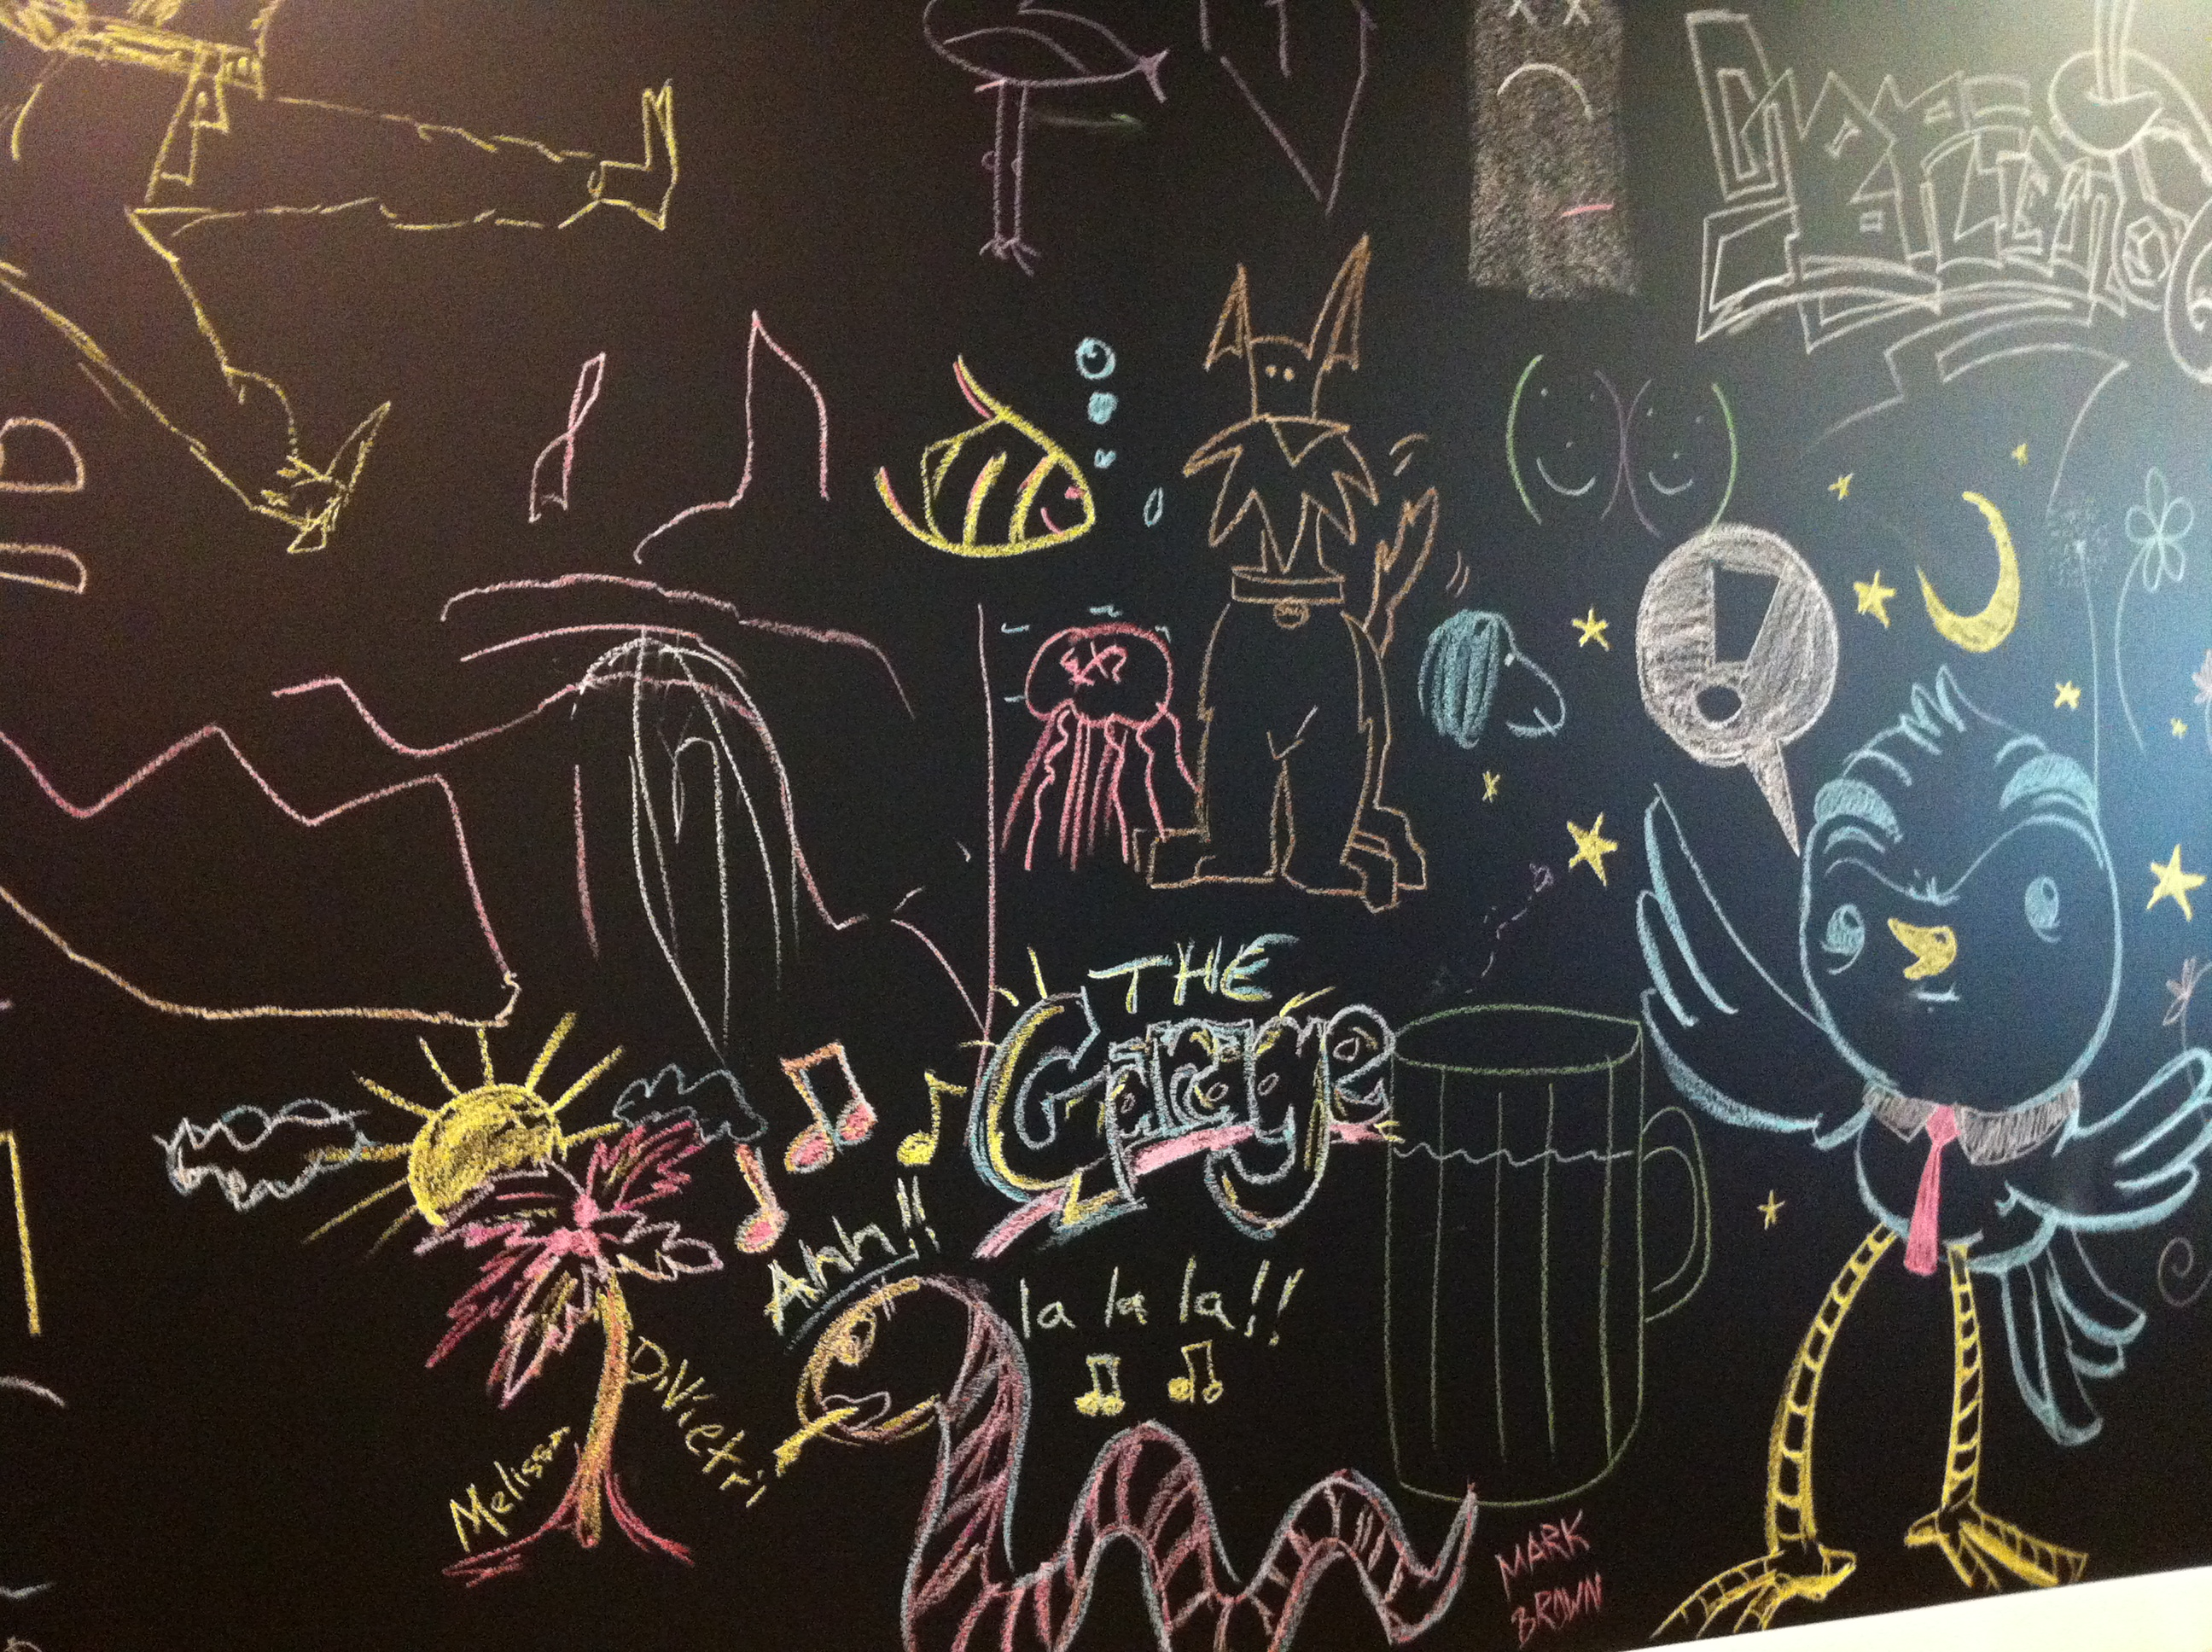 The Chalk Wall @ The Garage